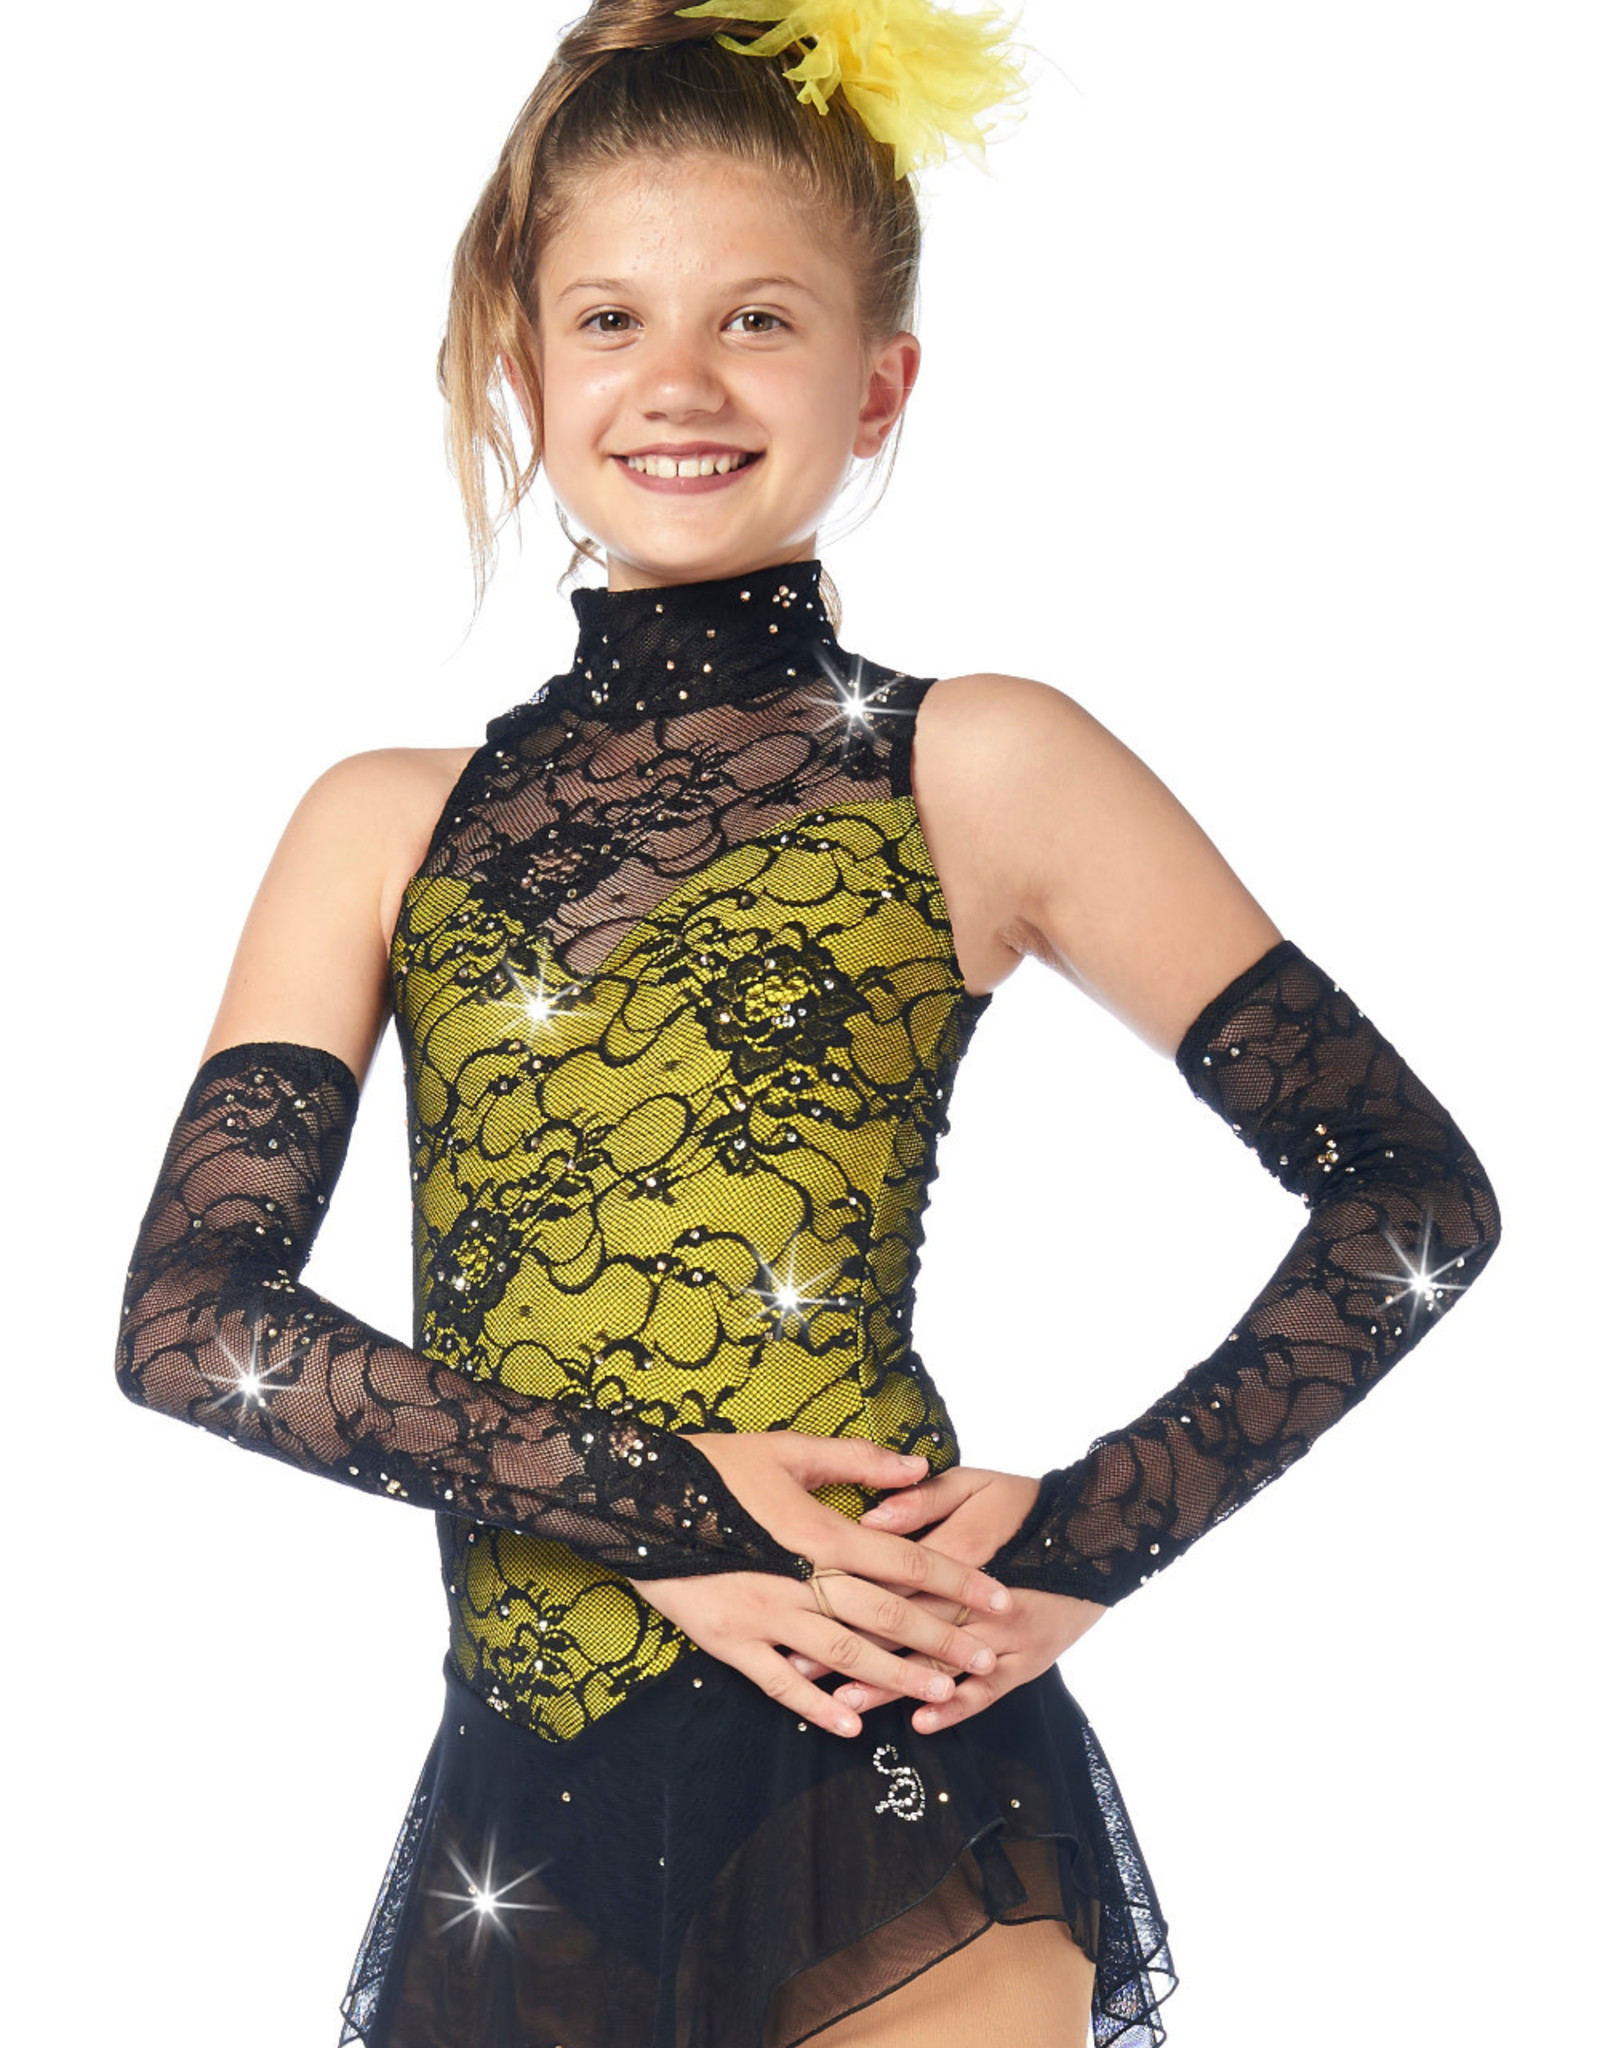 Sagester 2054 Competition Dress